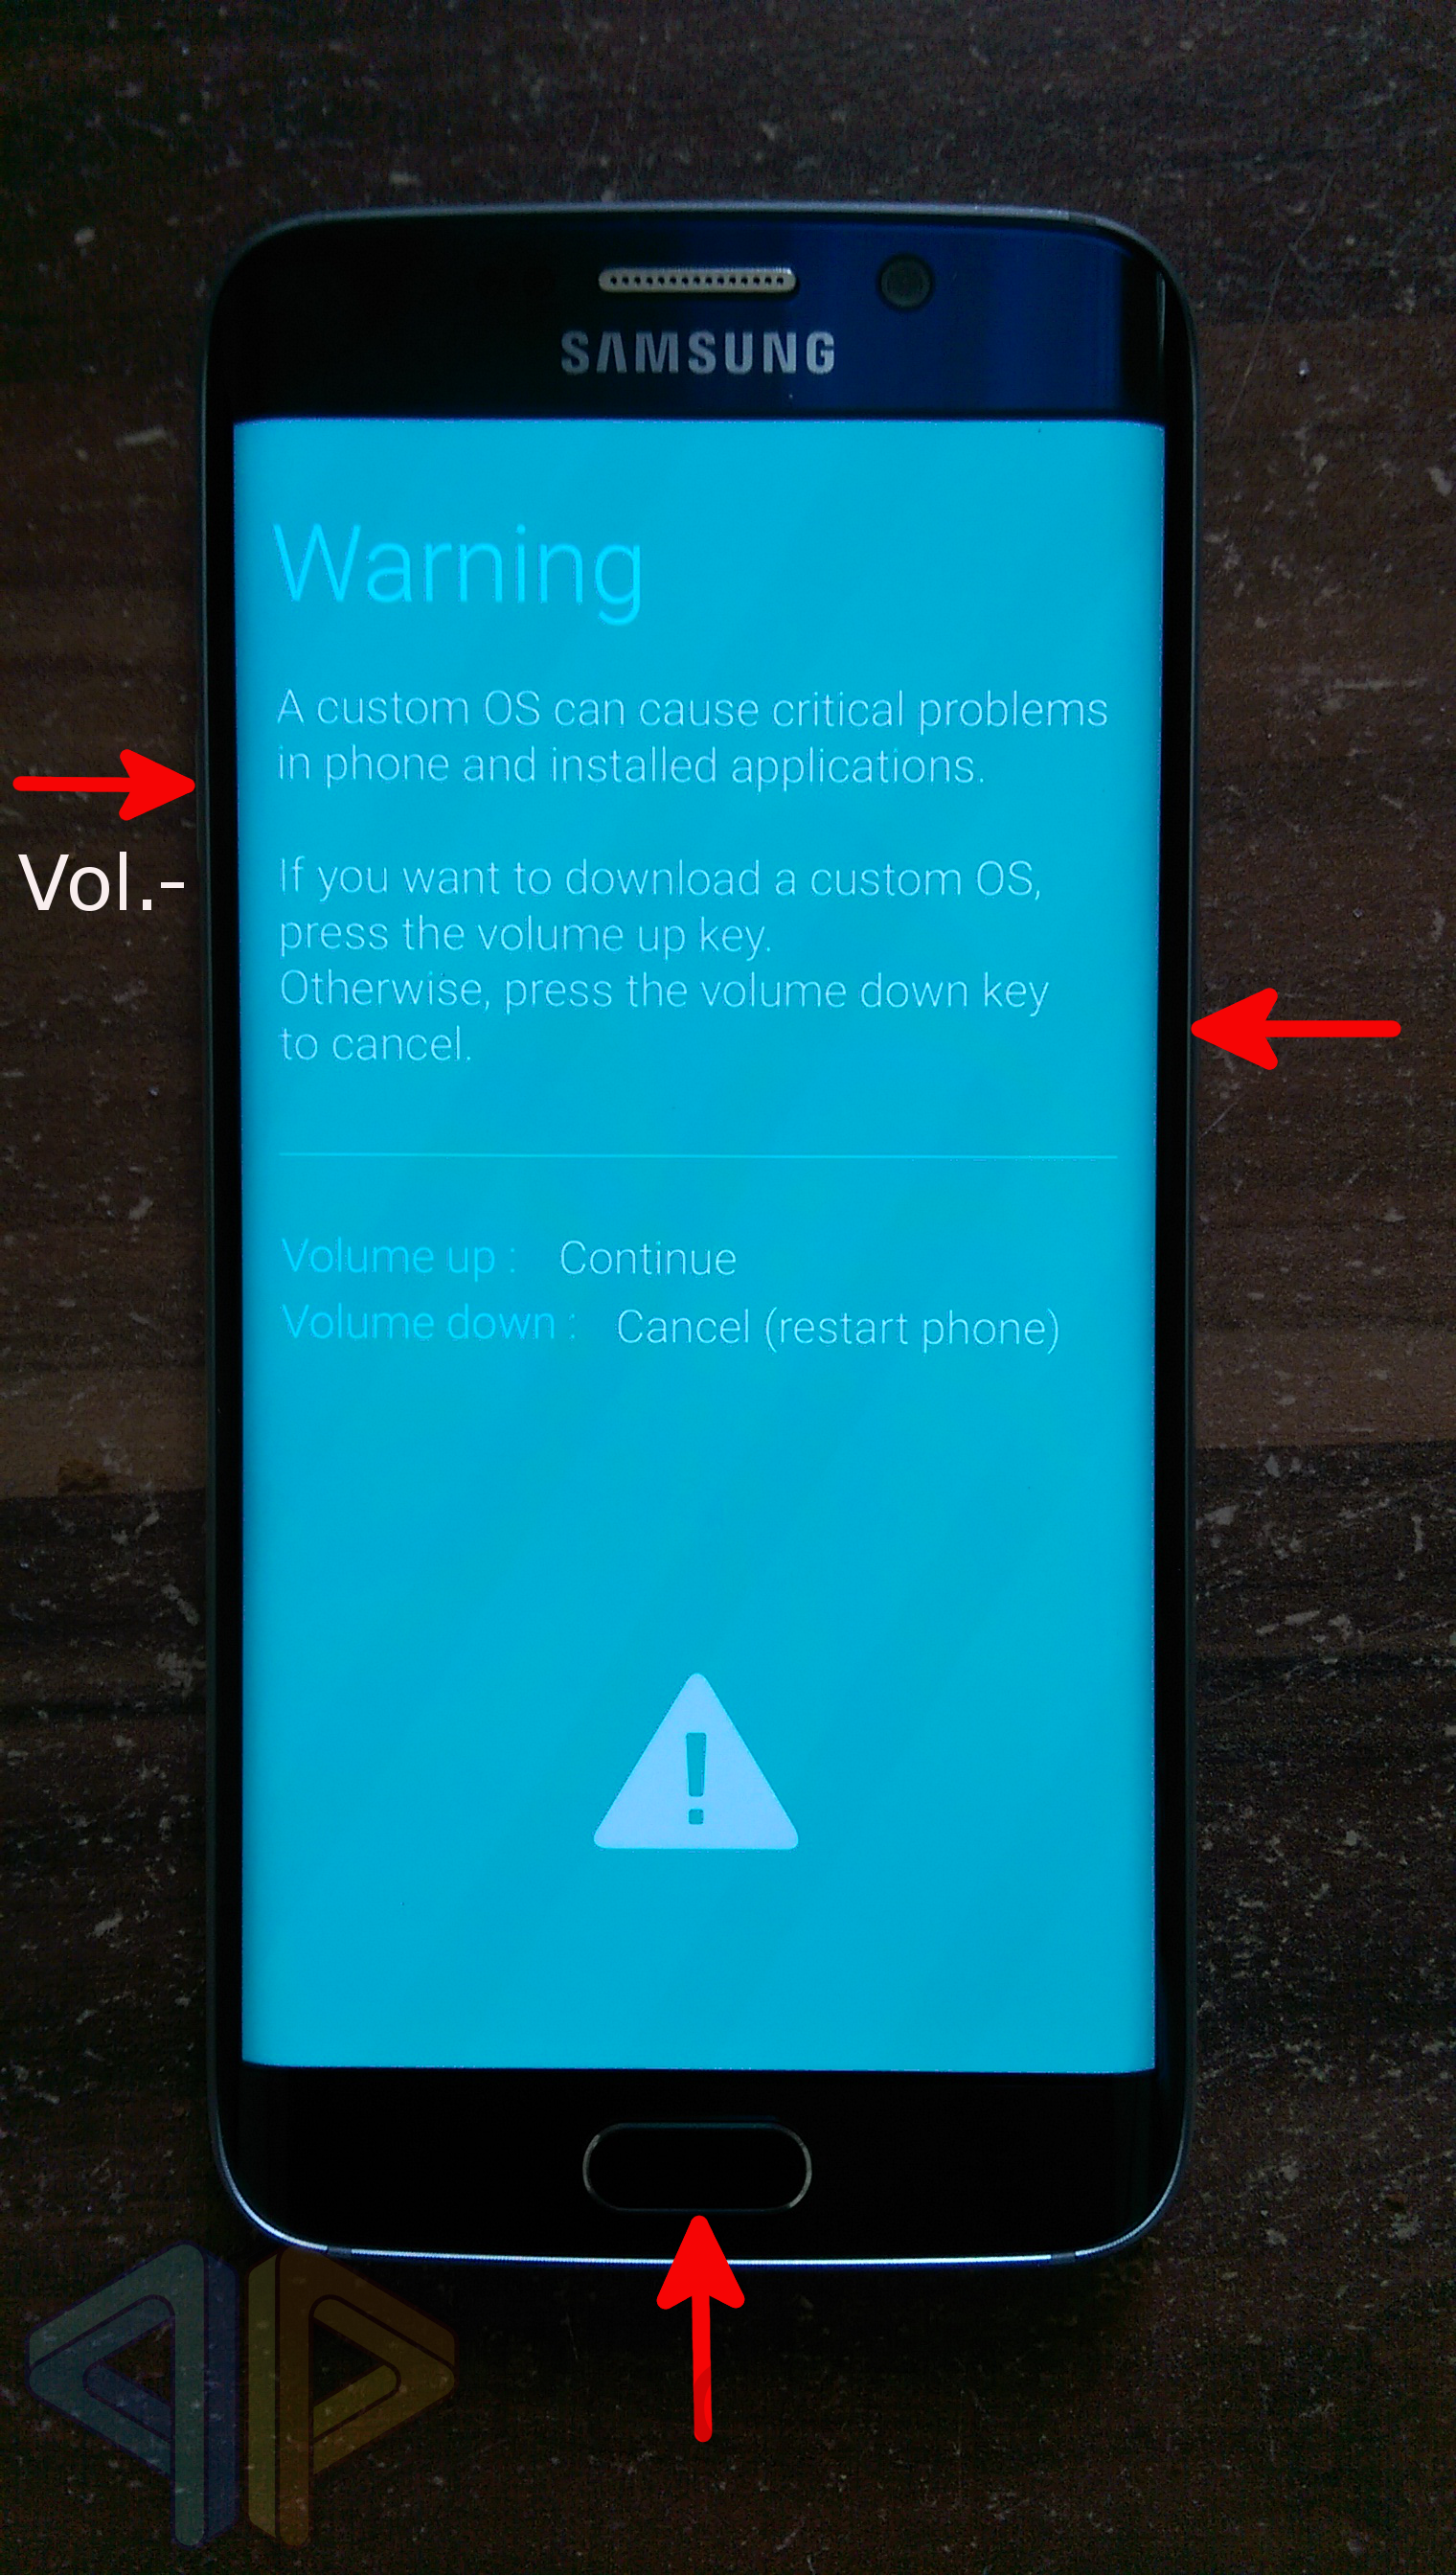 [Anleitung] Root per TWRP Recovery und Beta SuperSU - Galaxy S6/S6 Edge [5.1.1/6.0.1]-171189d1429867550-anleitung-flashen-firmware-odin-samsung-galaxy-s6-edge-sm-g920f-g925f-171129d1.png